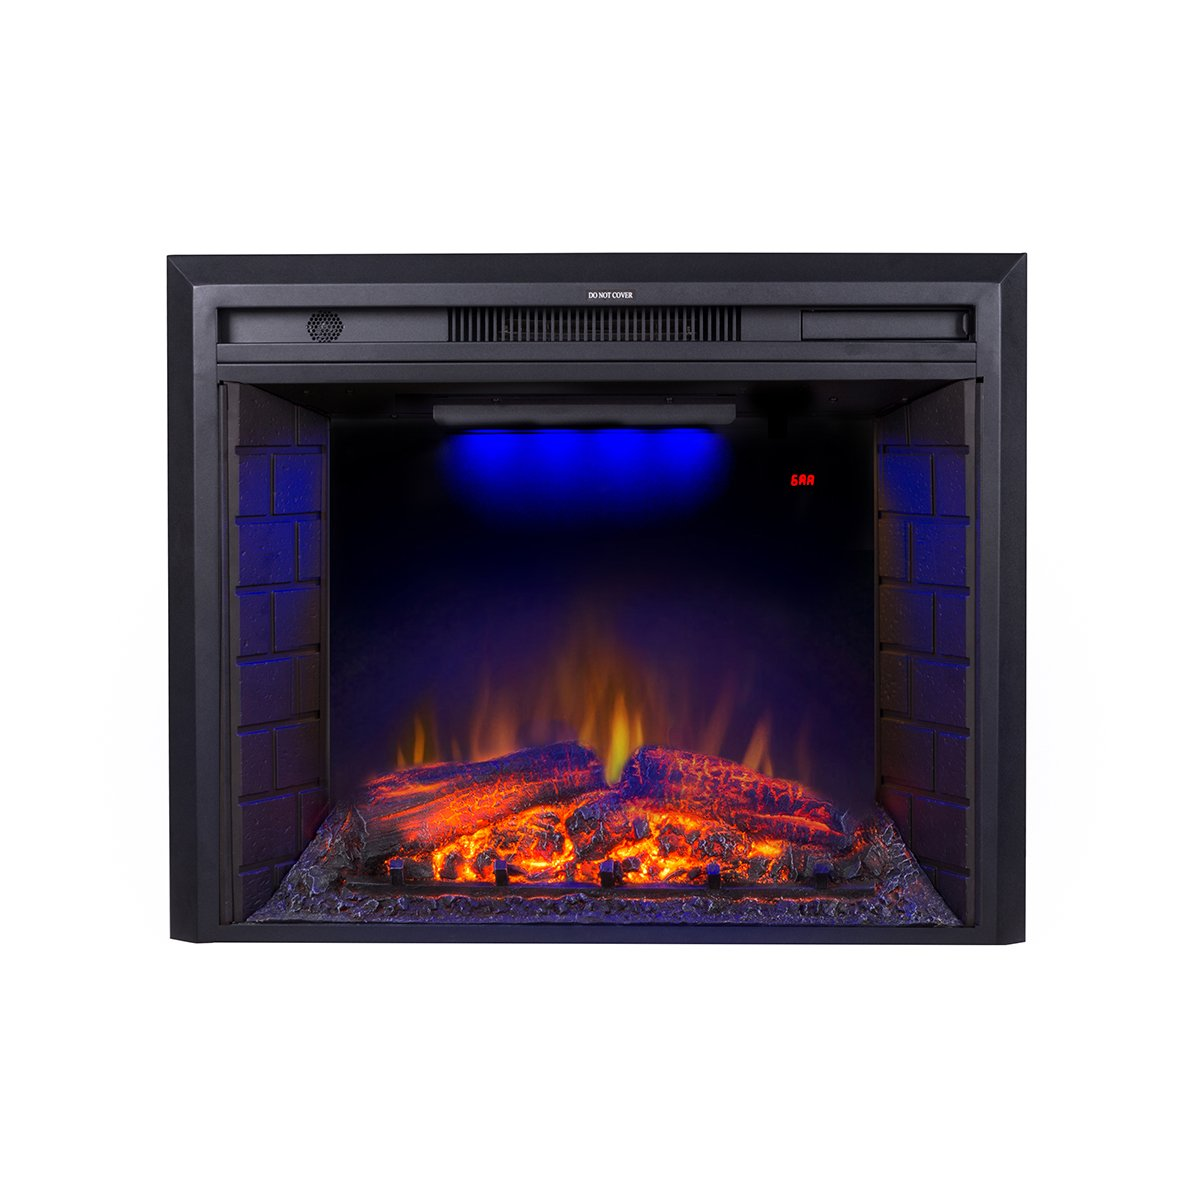 Flameline 30 Roluxy Electric Fireplace Insert with Remote Control,Log Speaker,750 1500W,Black